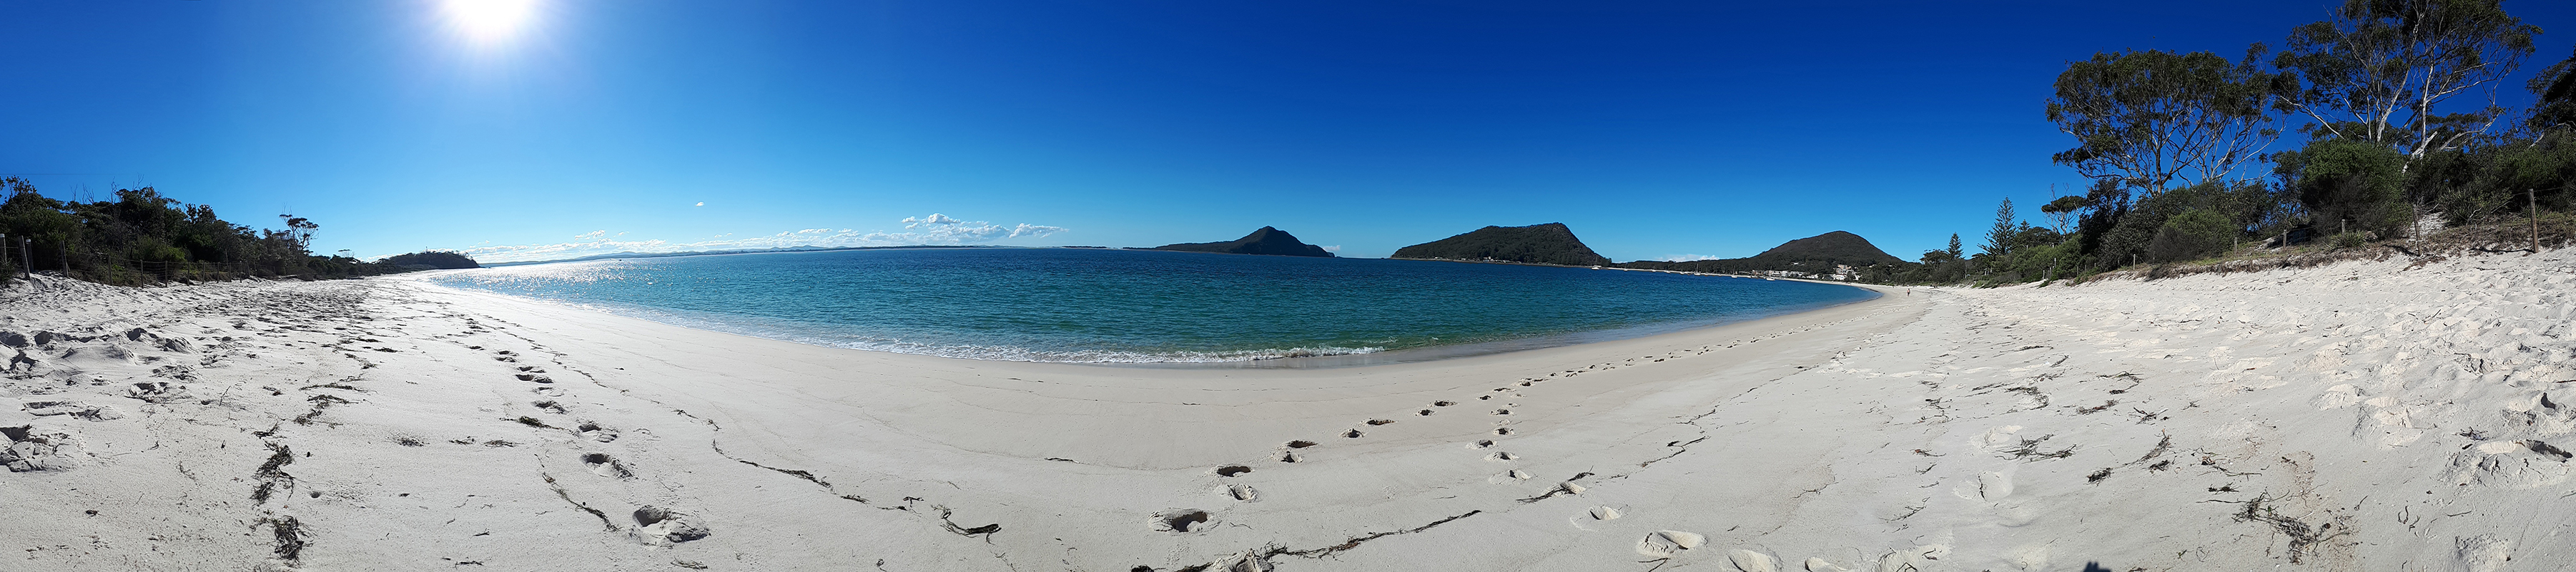 photograph of shoal bay in port stevens north of newcastle australia